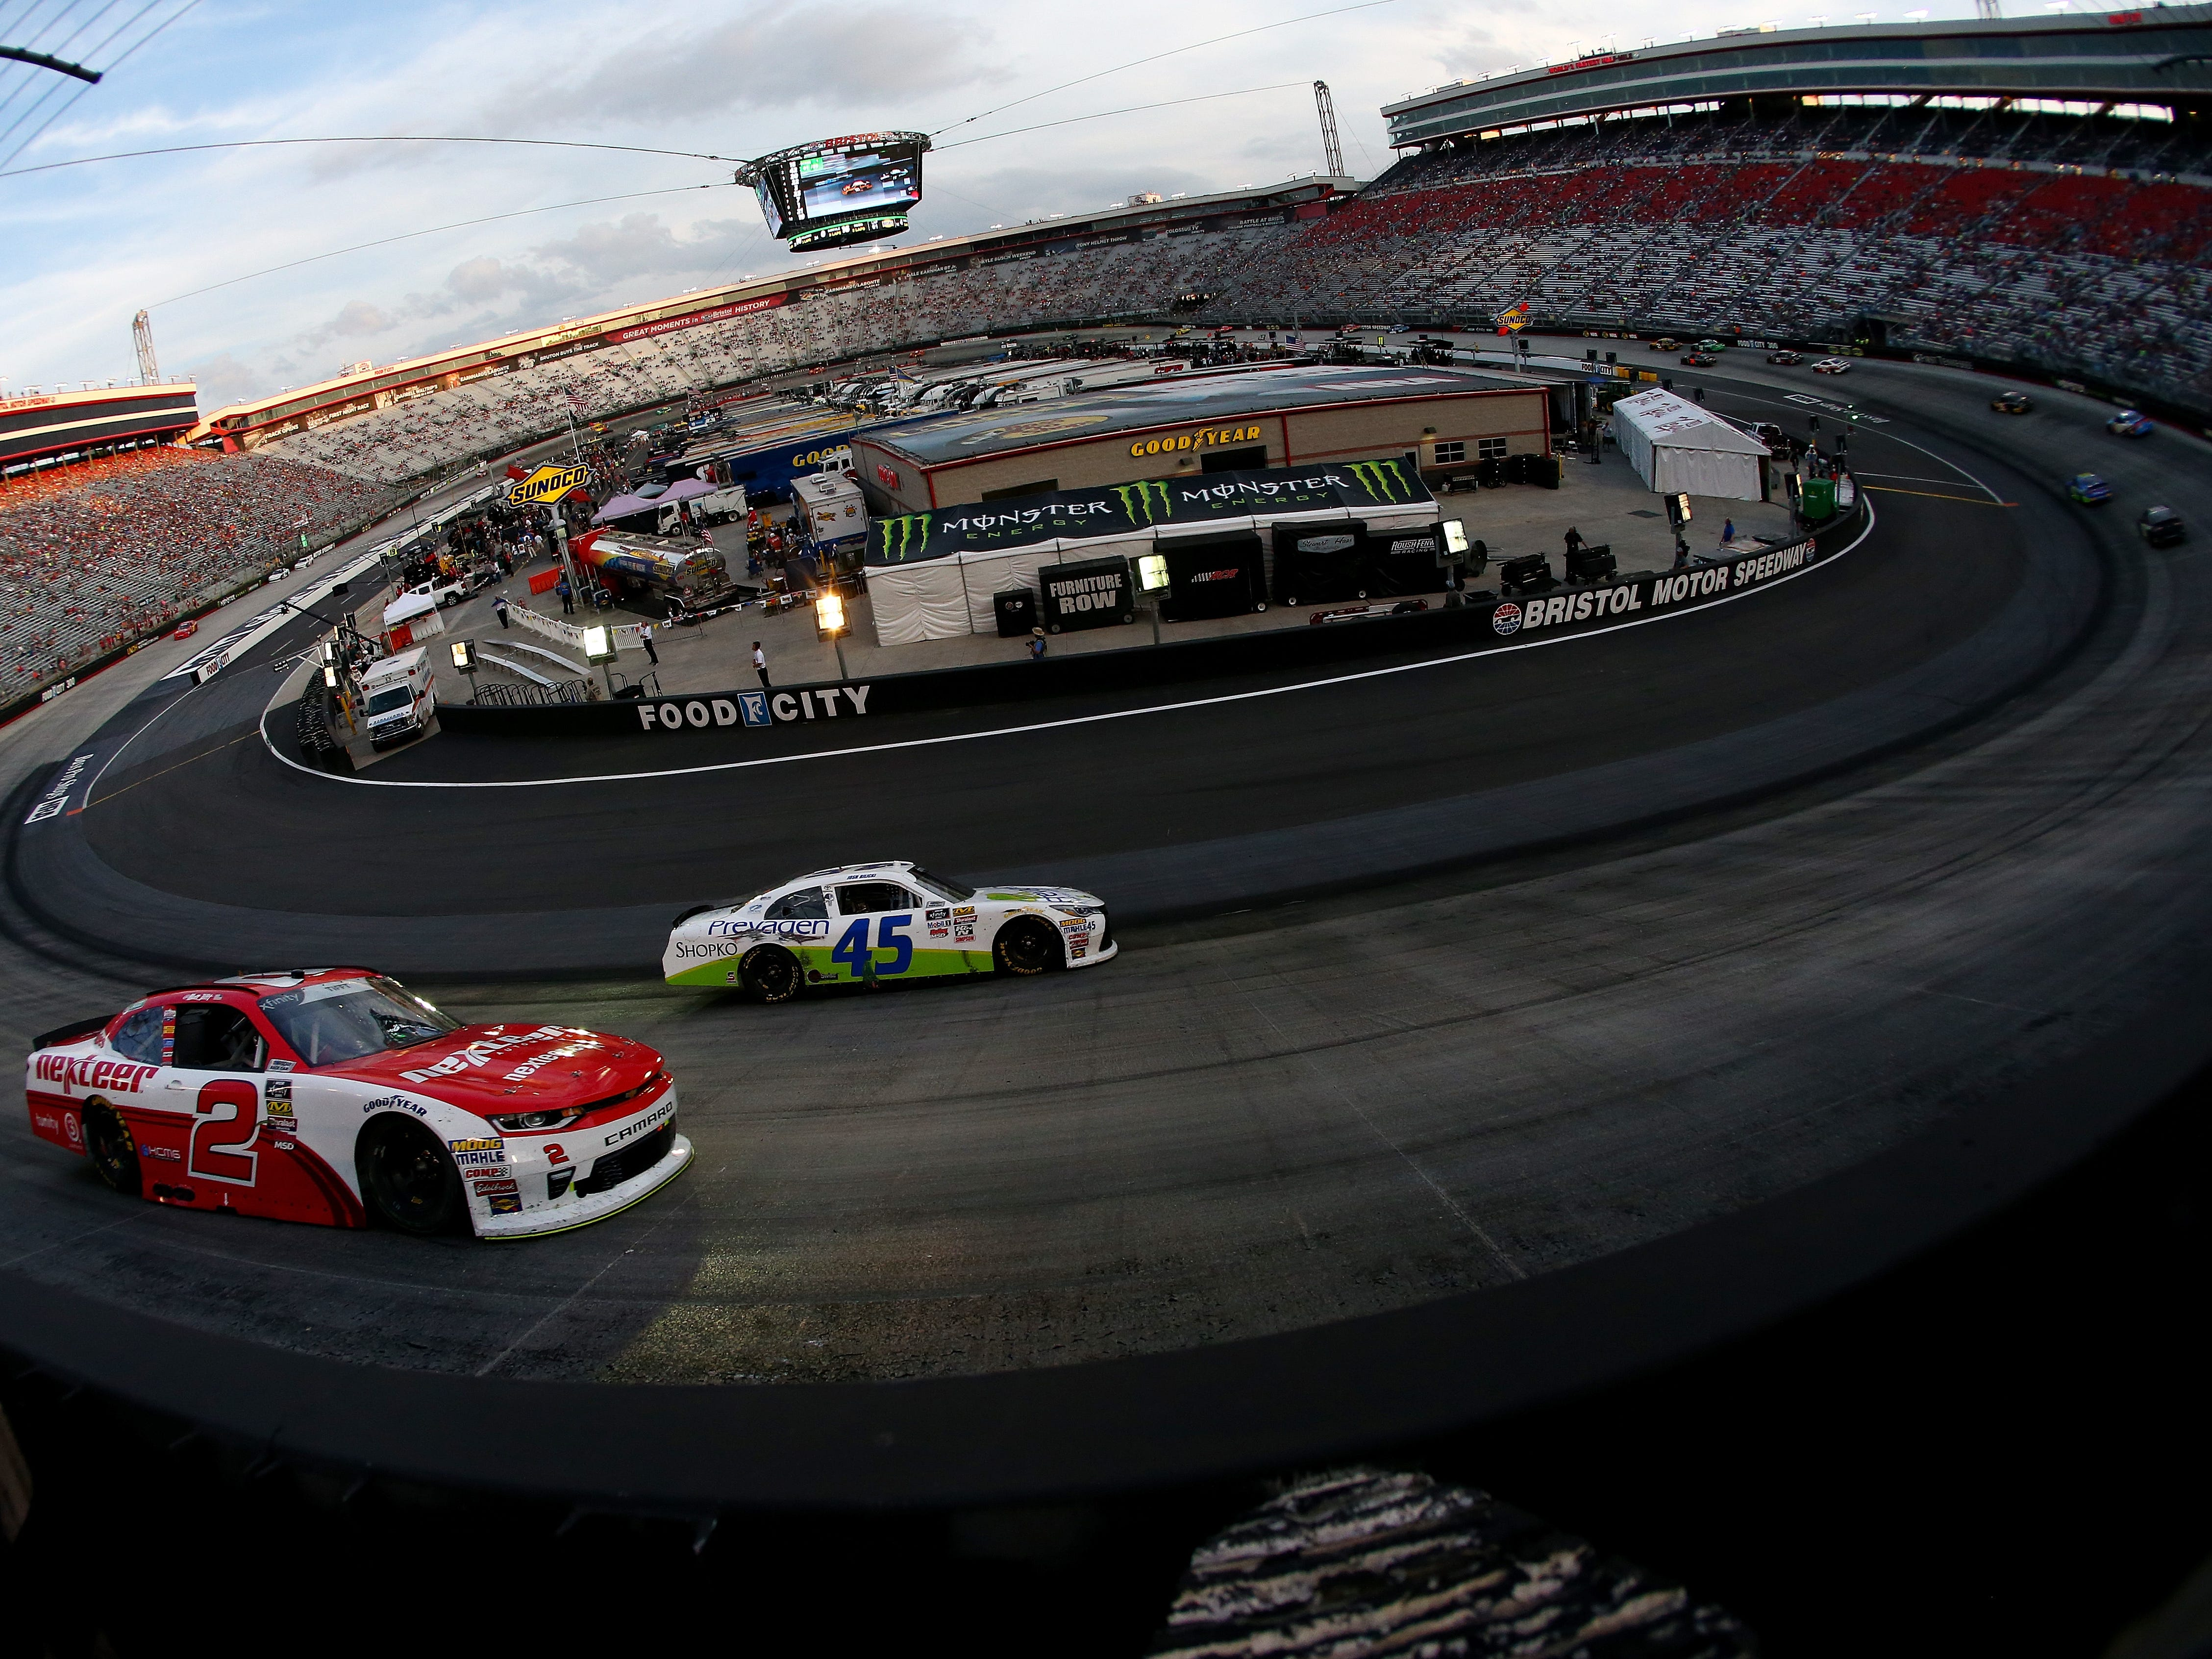 BRISTOL, TN - AUGUST 17: Matt Tifft, driver of the #2 Nexteer Chevrolet, and Josh Bilicki, driver of the #45 Prevagen Toyota, race during the NASCAR Xfinity Series Food City 300 at Bristol Motor Speedway on August 17, 2018 in Bristol, Tennessee.  (Photo by Sarah Crabill/Getty Images)